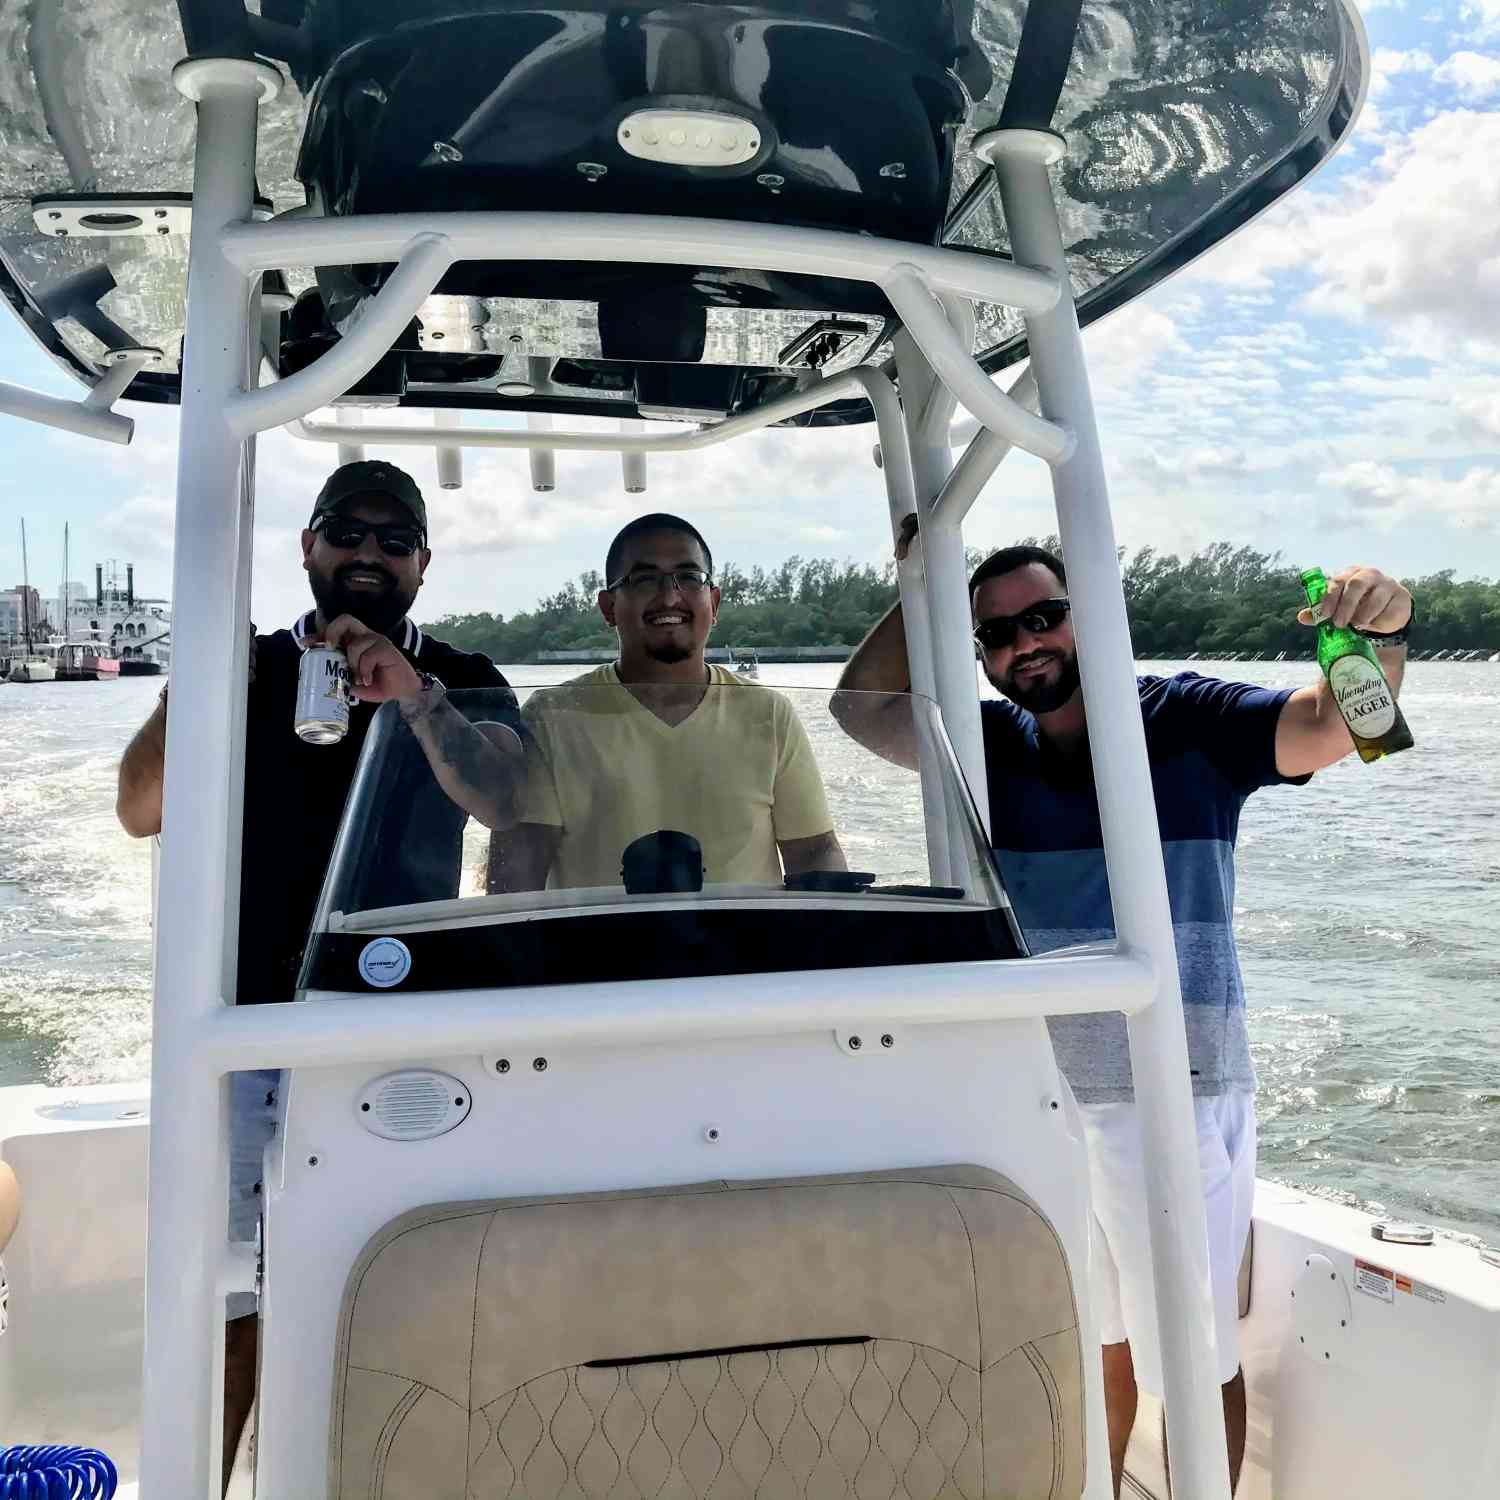 Title: Out in the water with the boys - On board their Sportsman Open 212 Center Console - Location: Fort Lauderdale. Participating in the Photo Contest #SportsmanMay2021